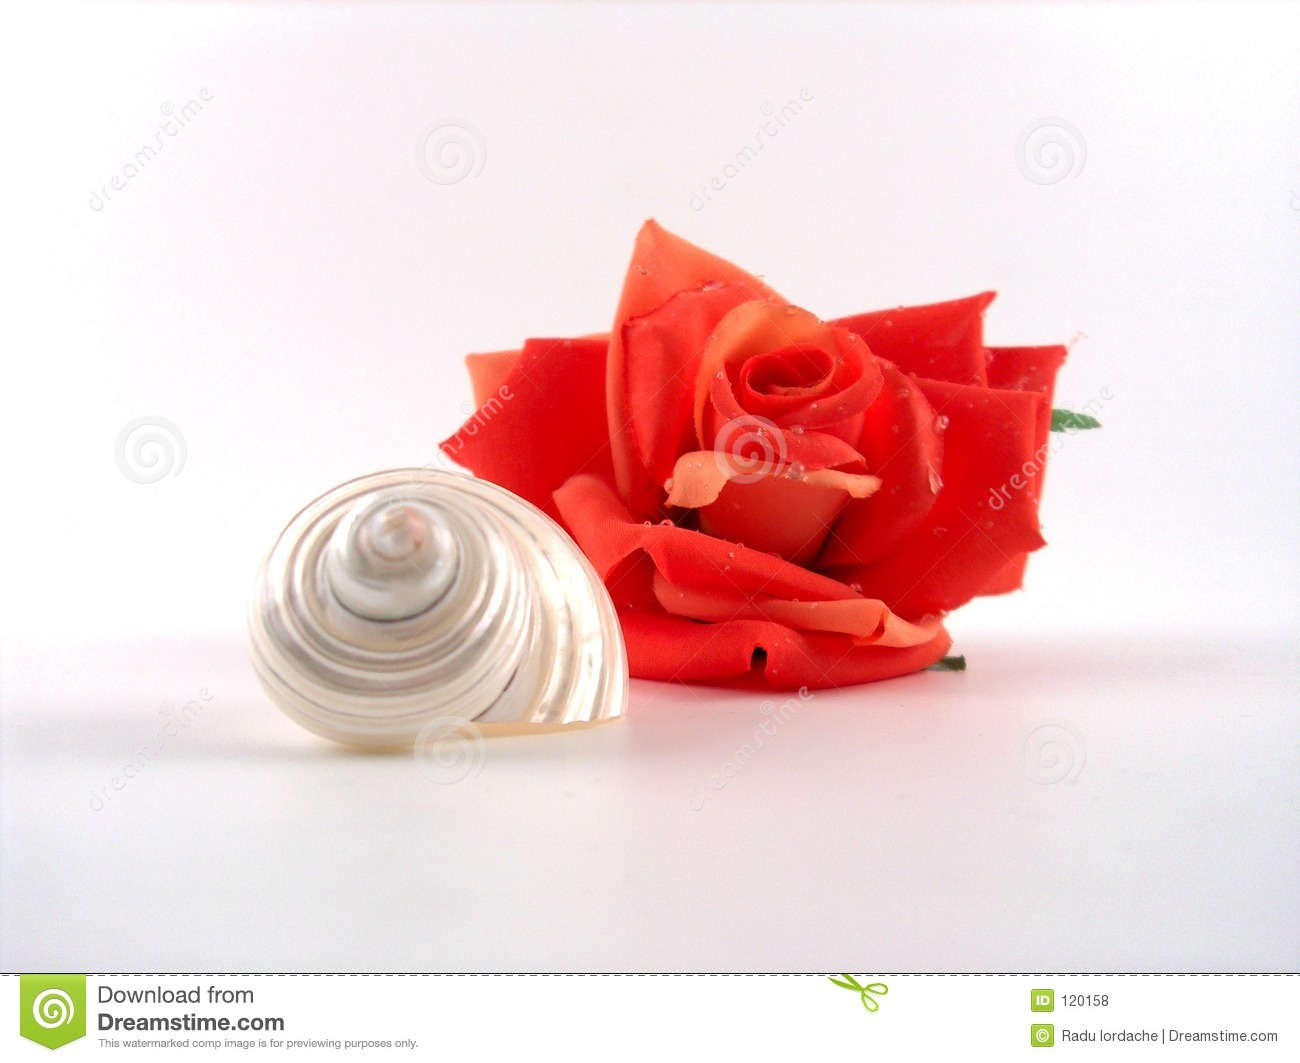 Rose and shell